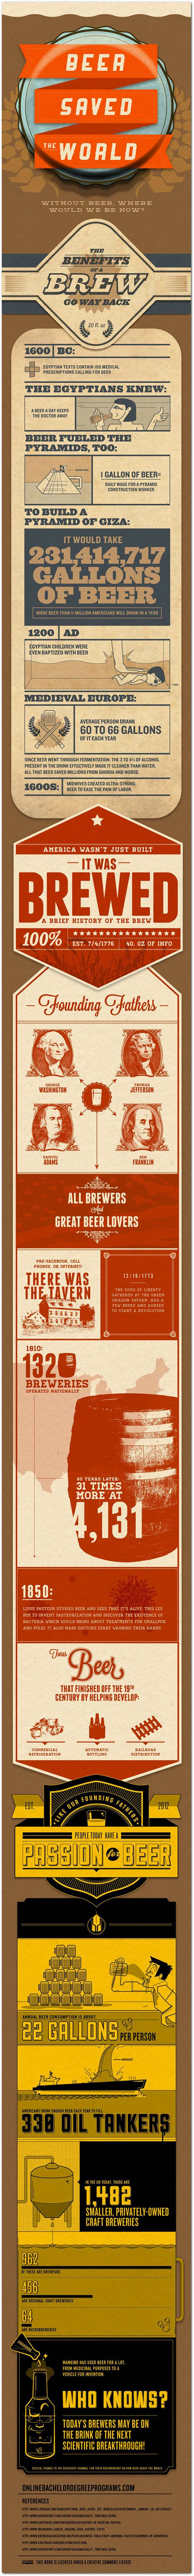 The (delicious) history of beer